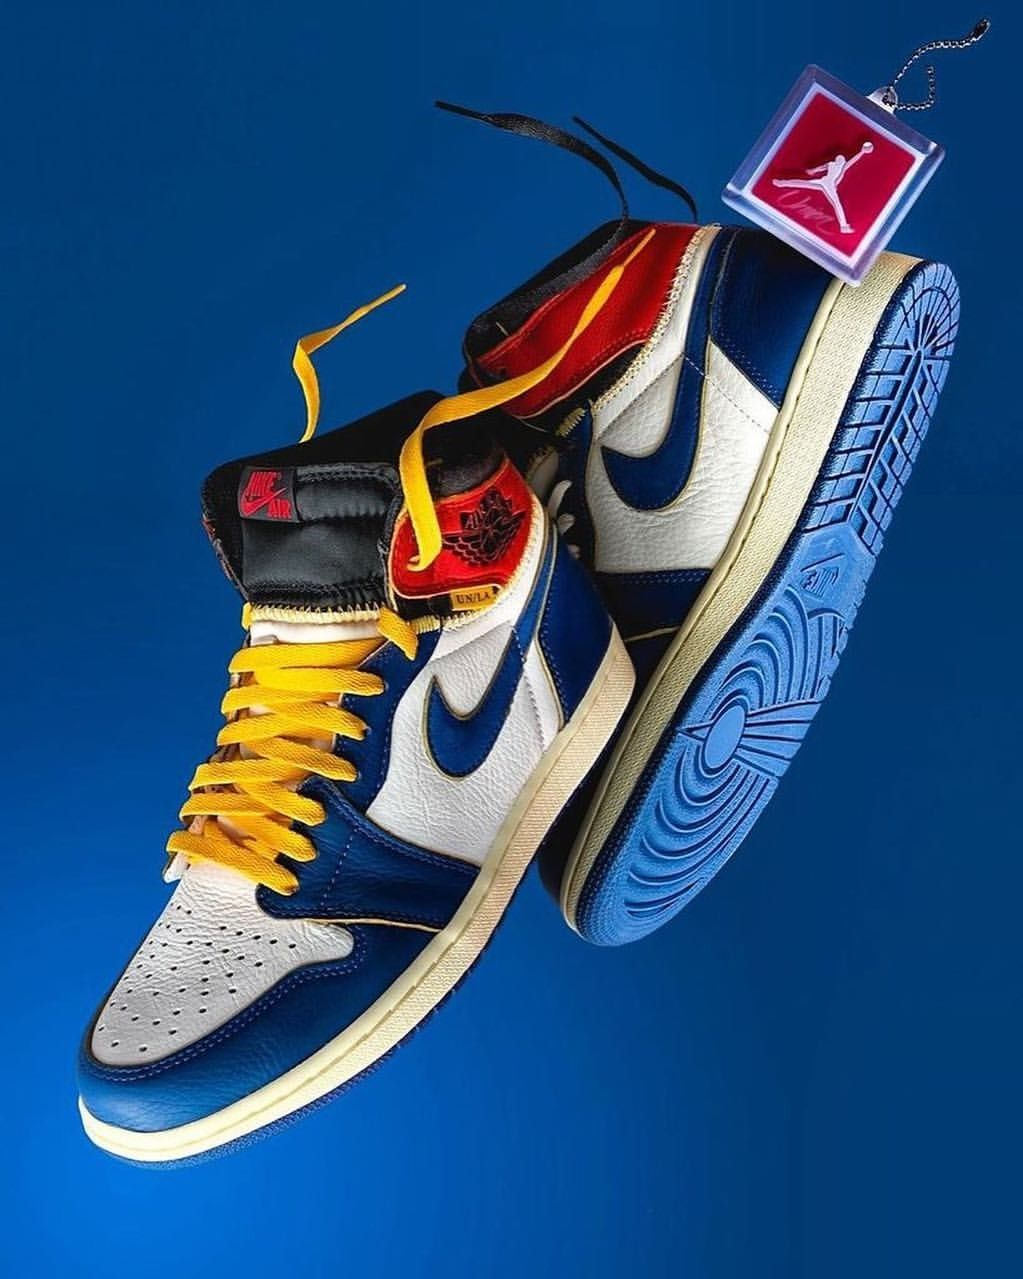 Customized Nike Air Ce 1 Side 1 Shoes Can Customize Digital